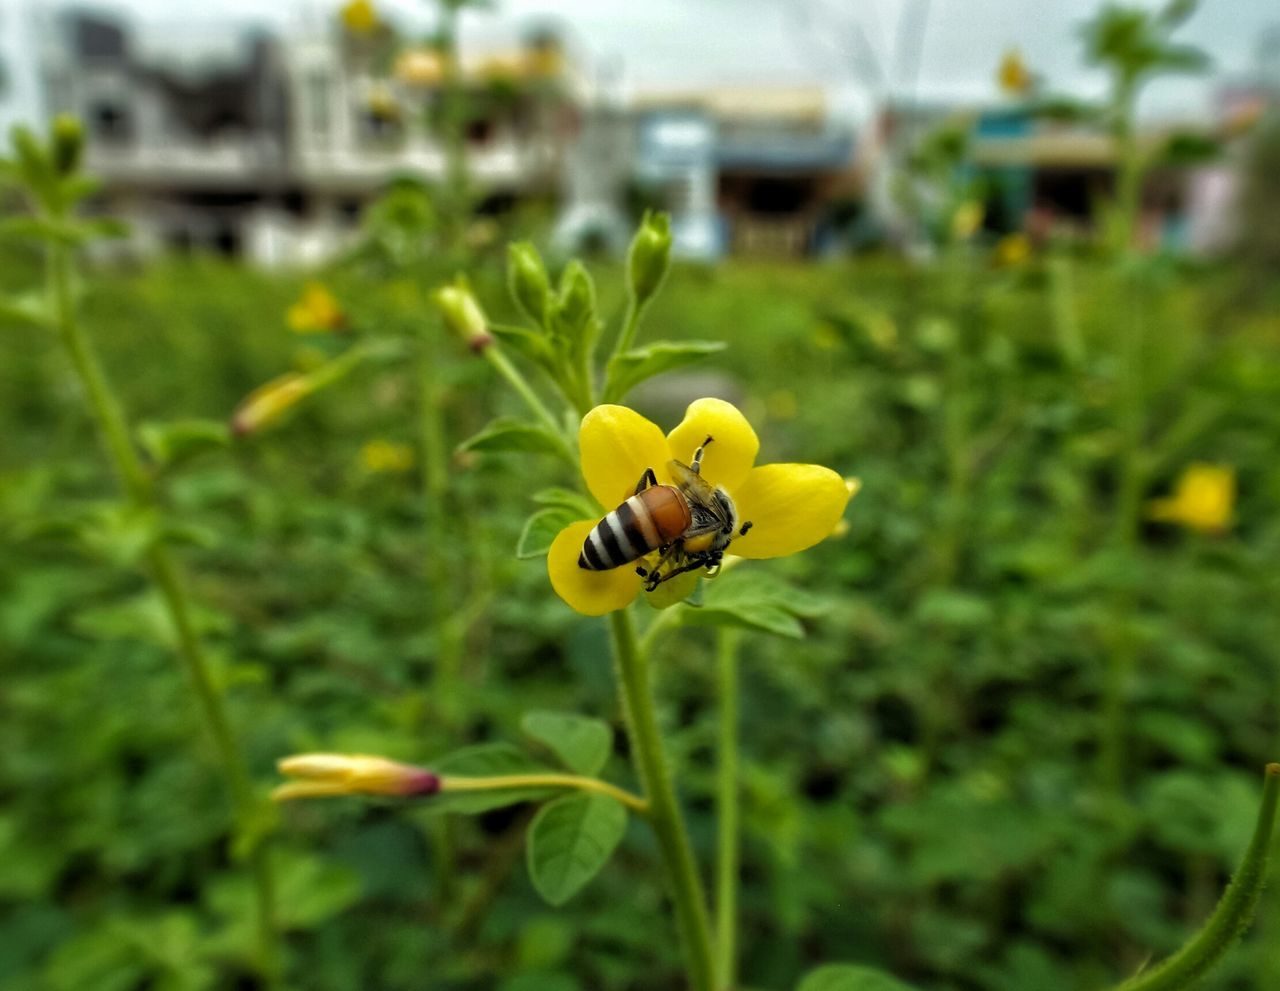 insect, yellow, flower, nature, growth, focus on foreground, plant, beauty in nature, green color, animals in the wild, fragility, day, outdoors, animal themes, close-up, no people, freshness, leaf, one animal, bee, flower head